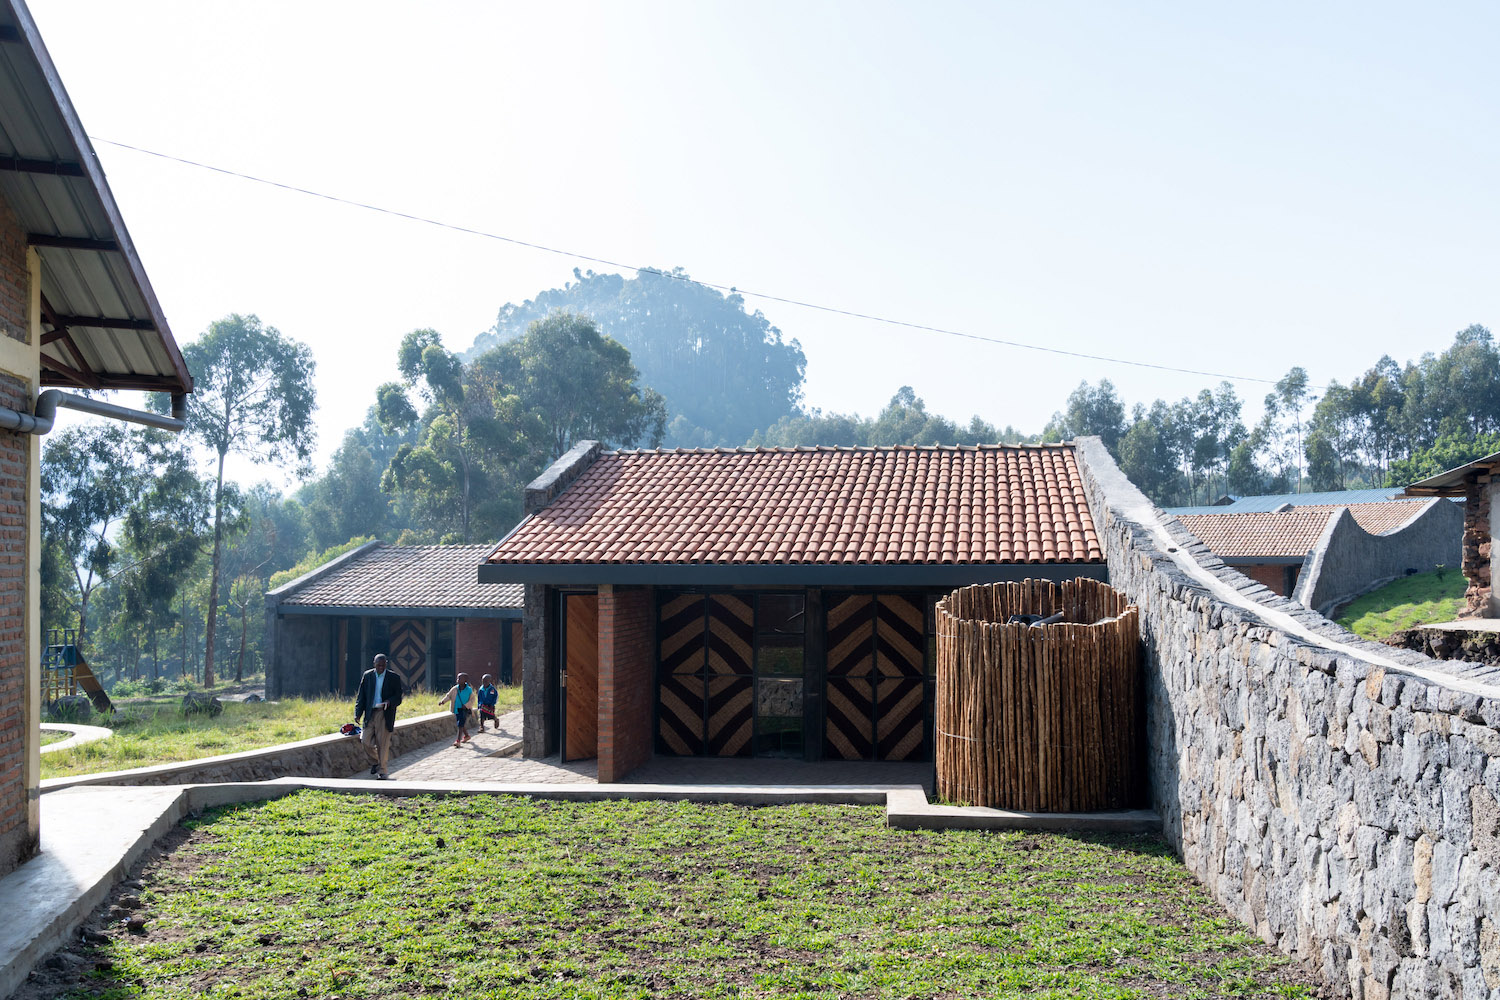 The stone walls pay homage to the existing vernaculars of Rwandan stoneworking. Iwan Baan (Limited Copyright)